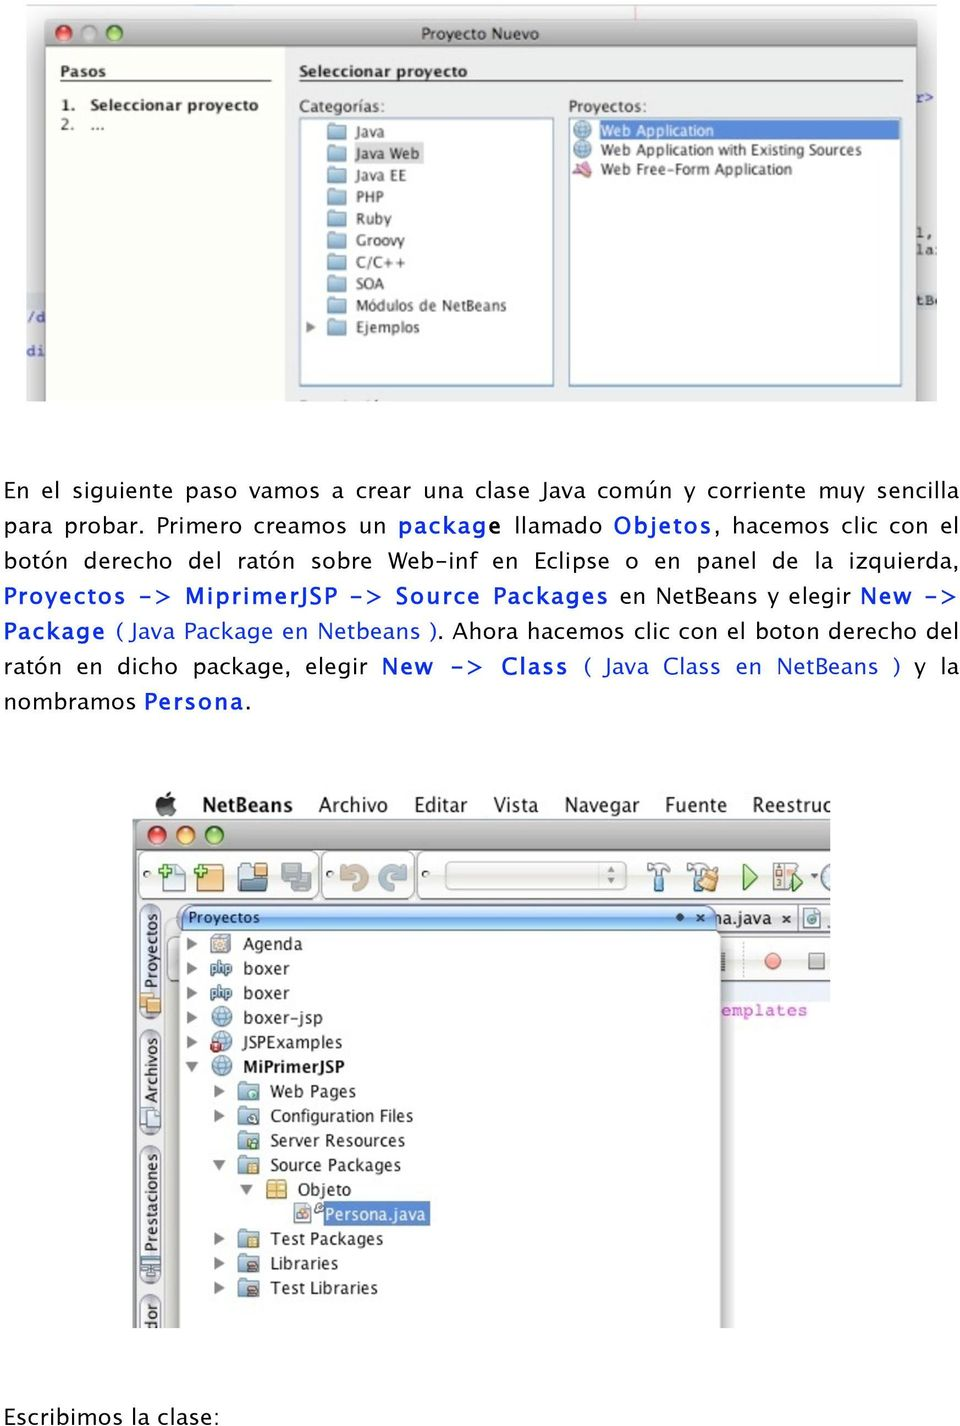 de la izquierda, Proyectos -> MiprimerJSP -> Source Packages en NetBeans y elegir New -> Package ( Java Package en Netbeans ).